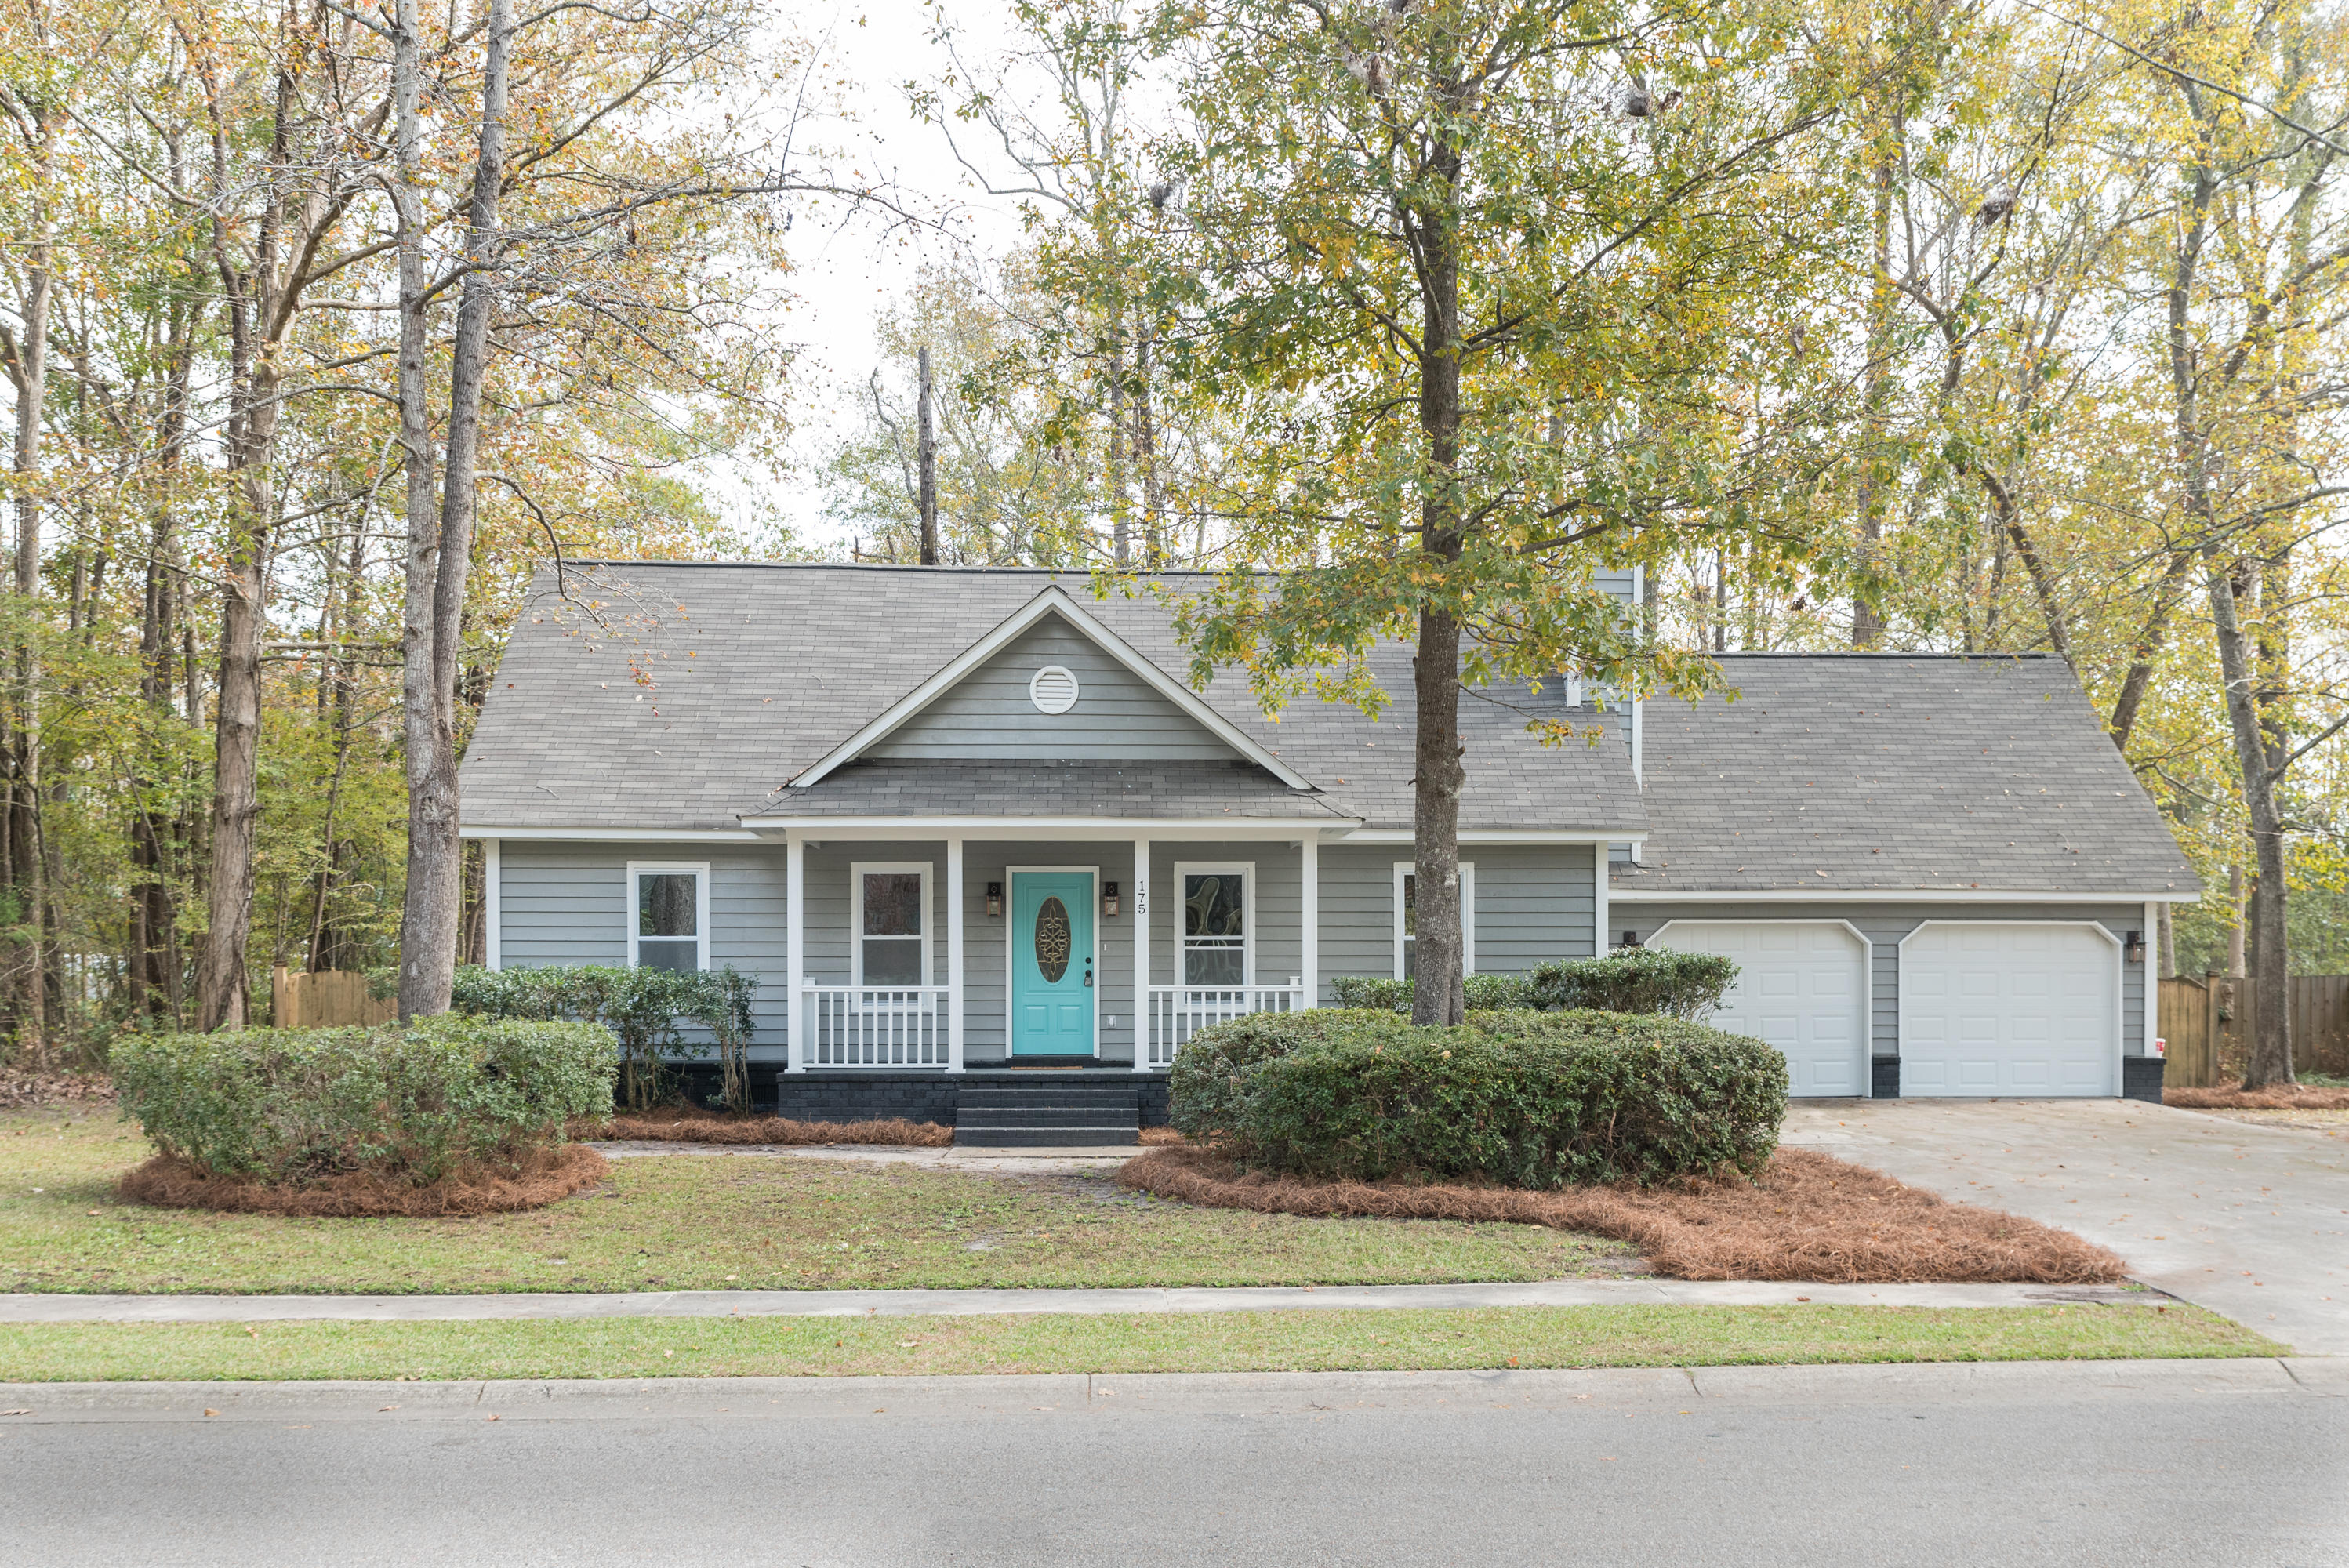 Crowfield Plantation Homes For Sale - 175 Fox Chase, Goose Creek, SC - 0